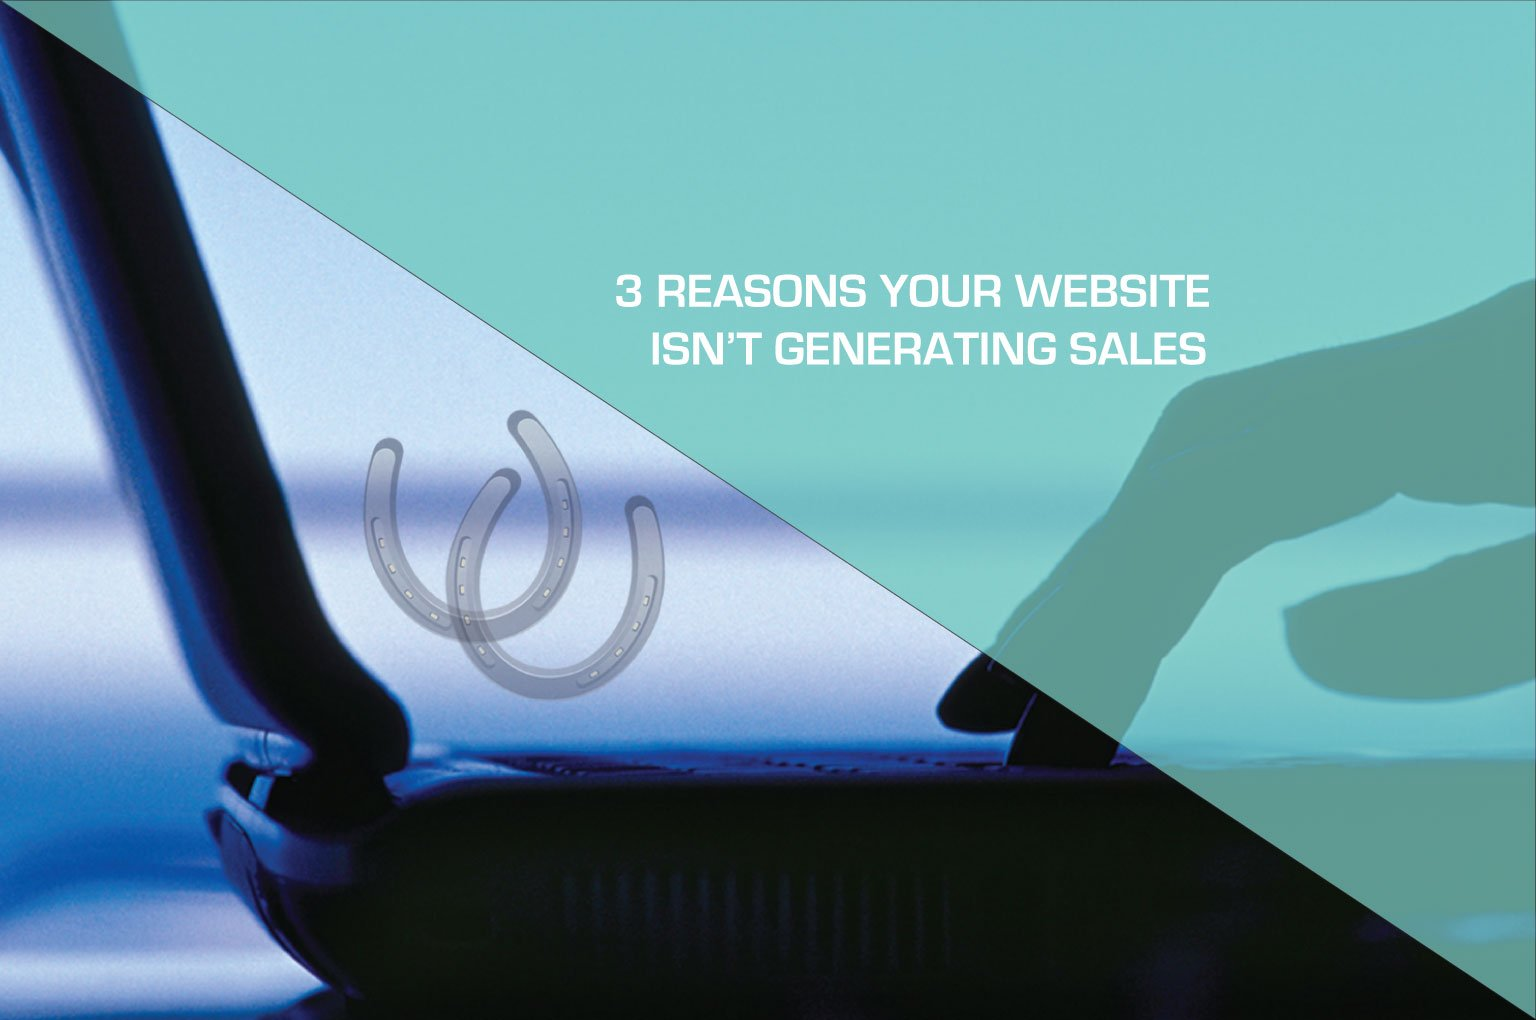 3 reasons your website isn't generating sales